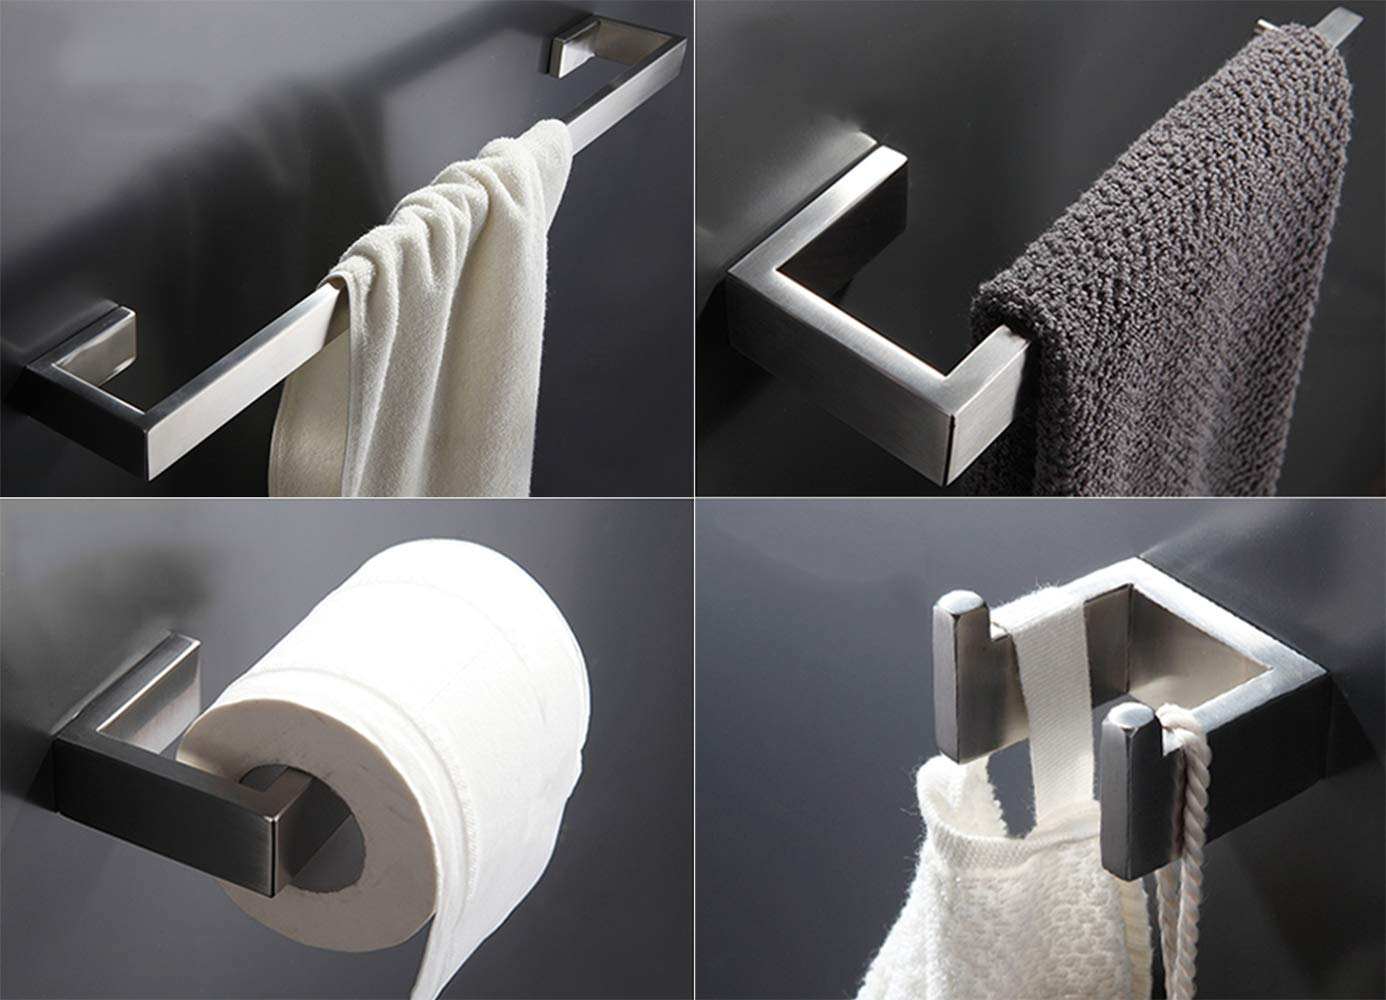 Z MAYABBO Towel Bar Set, 4Pcs Bathroom Hardware Accessory Set Brushed Nickel, SUS304 Stainless Steel Bath Hardware Set, Towel Rod with Toilet Paper Holder, Towel Bar and Double Robe Hook.